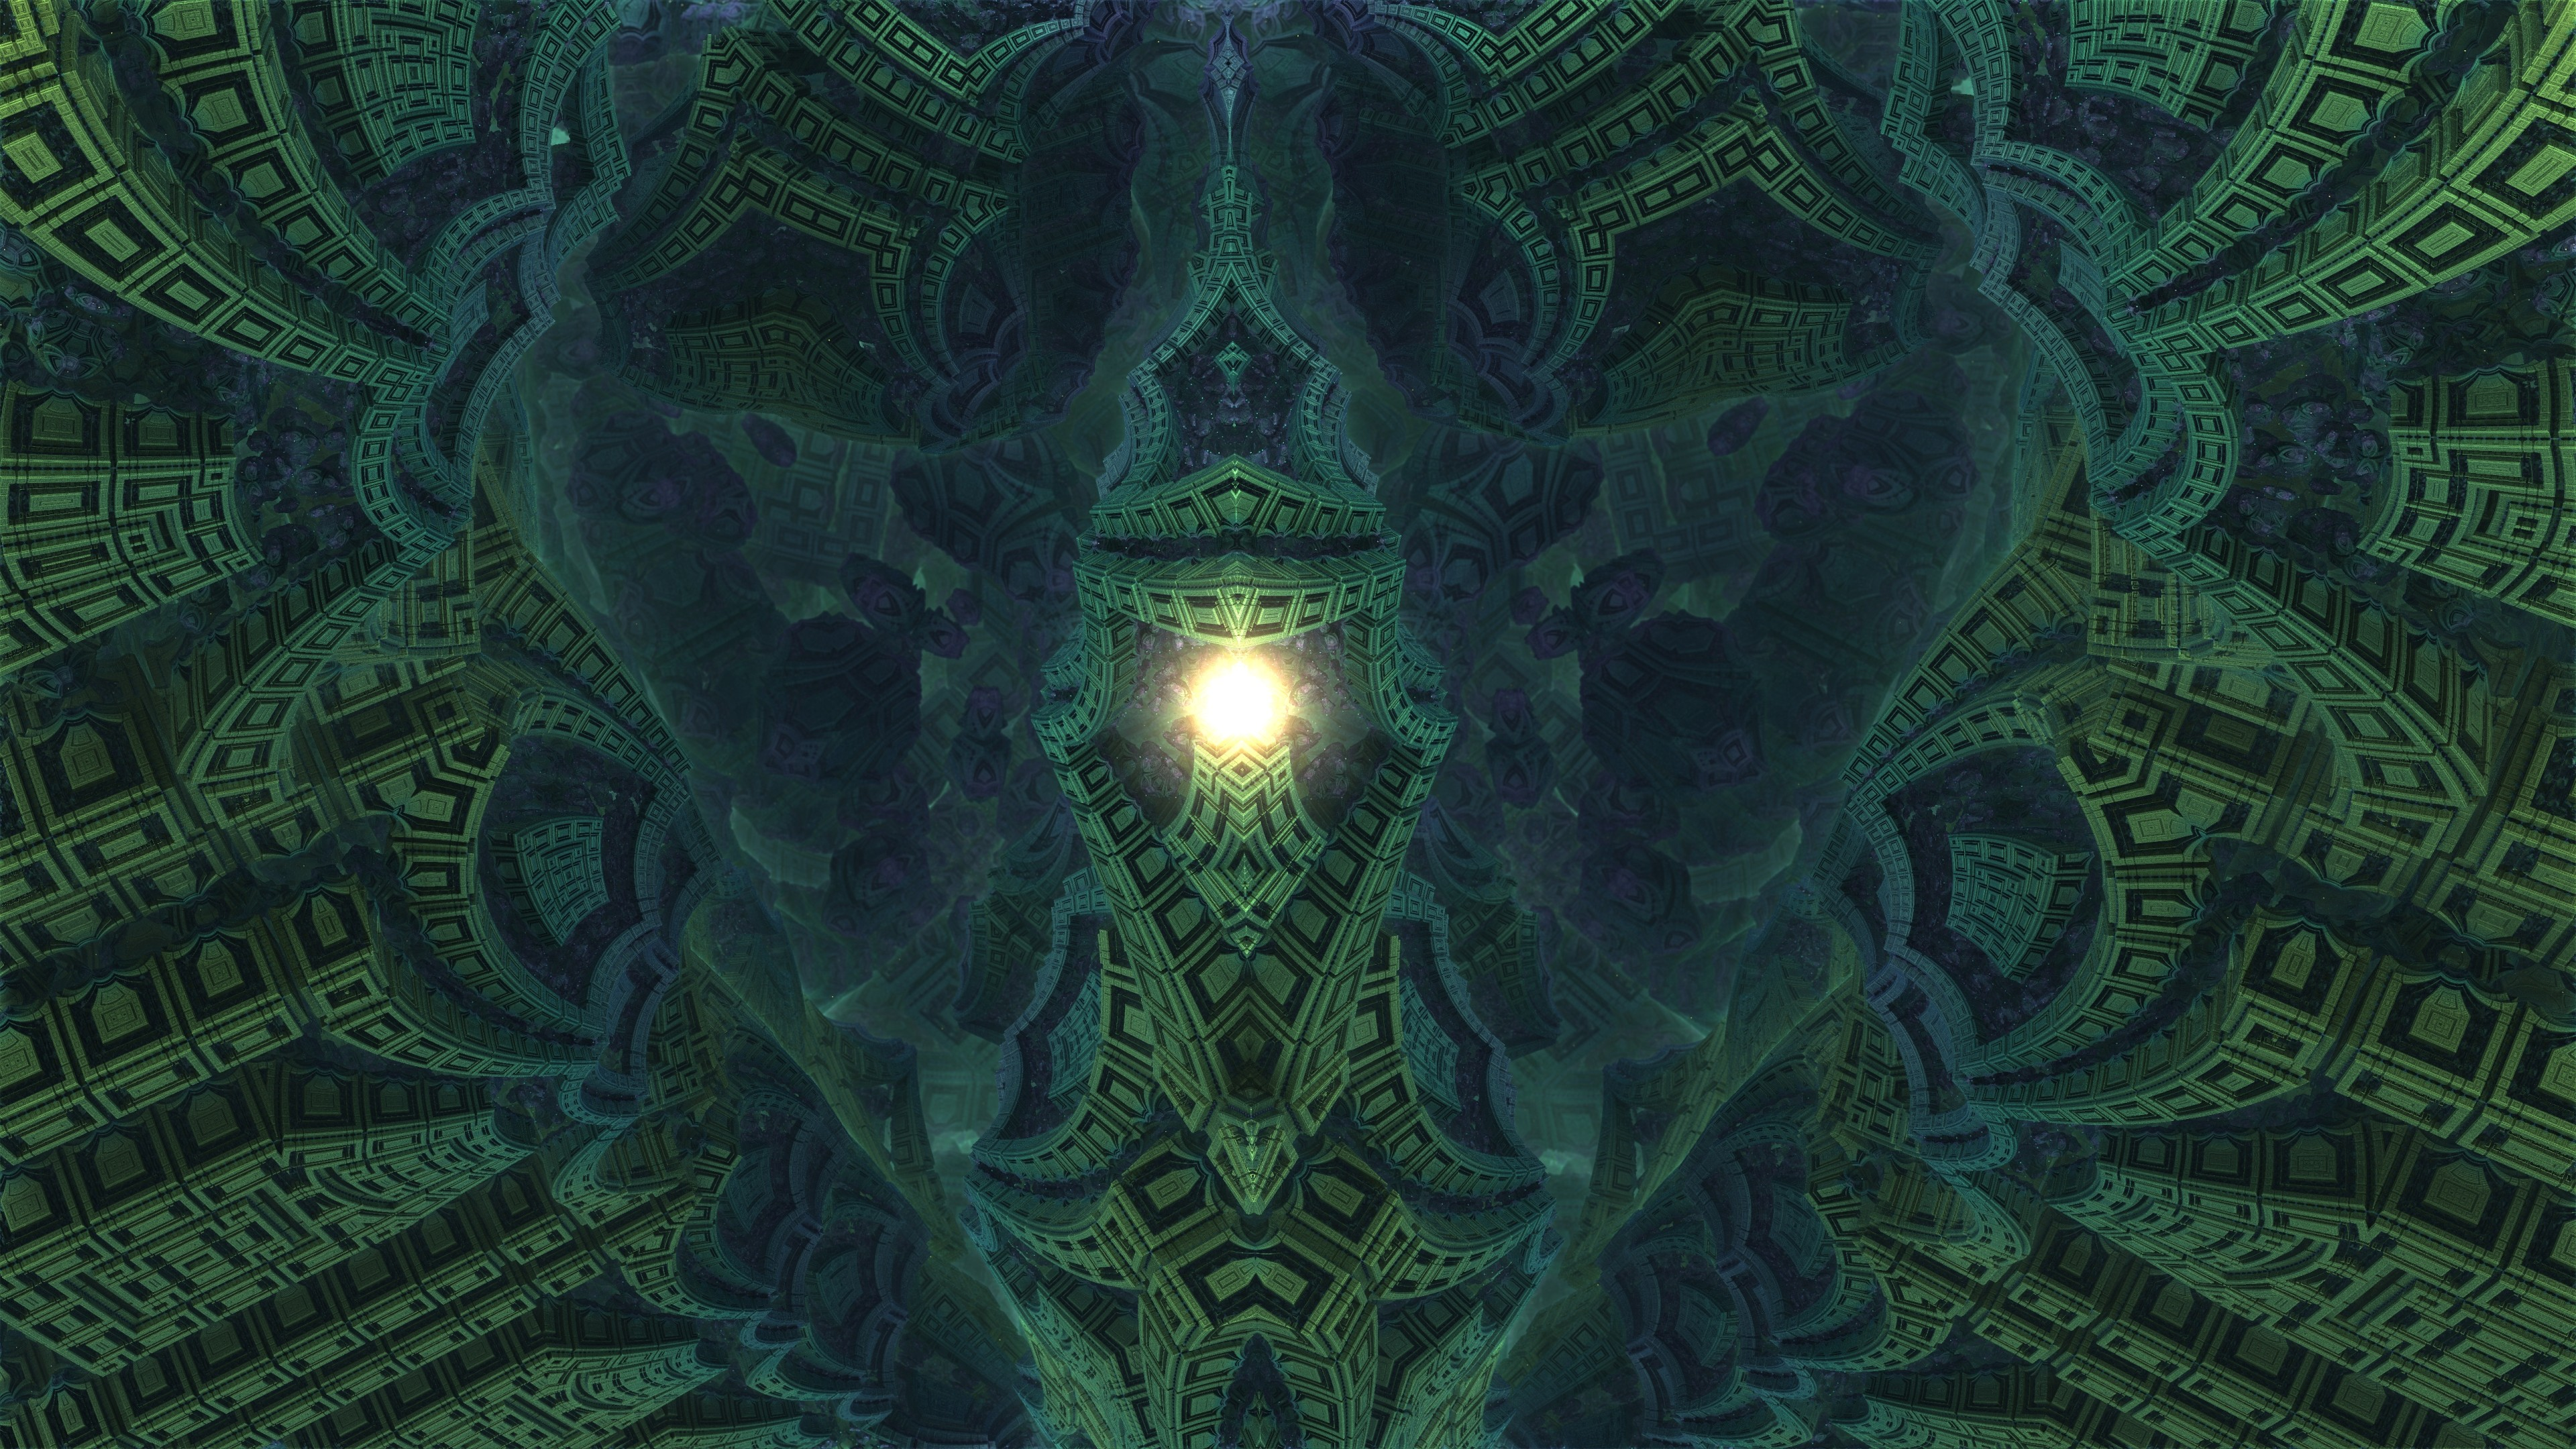 Descent into Fractal Core - Mandelbulb 3D fractal by schizo604